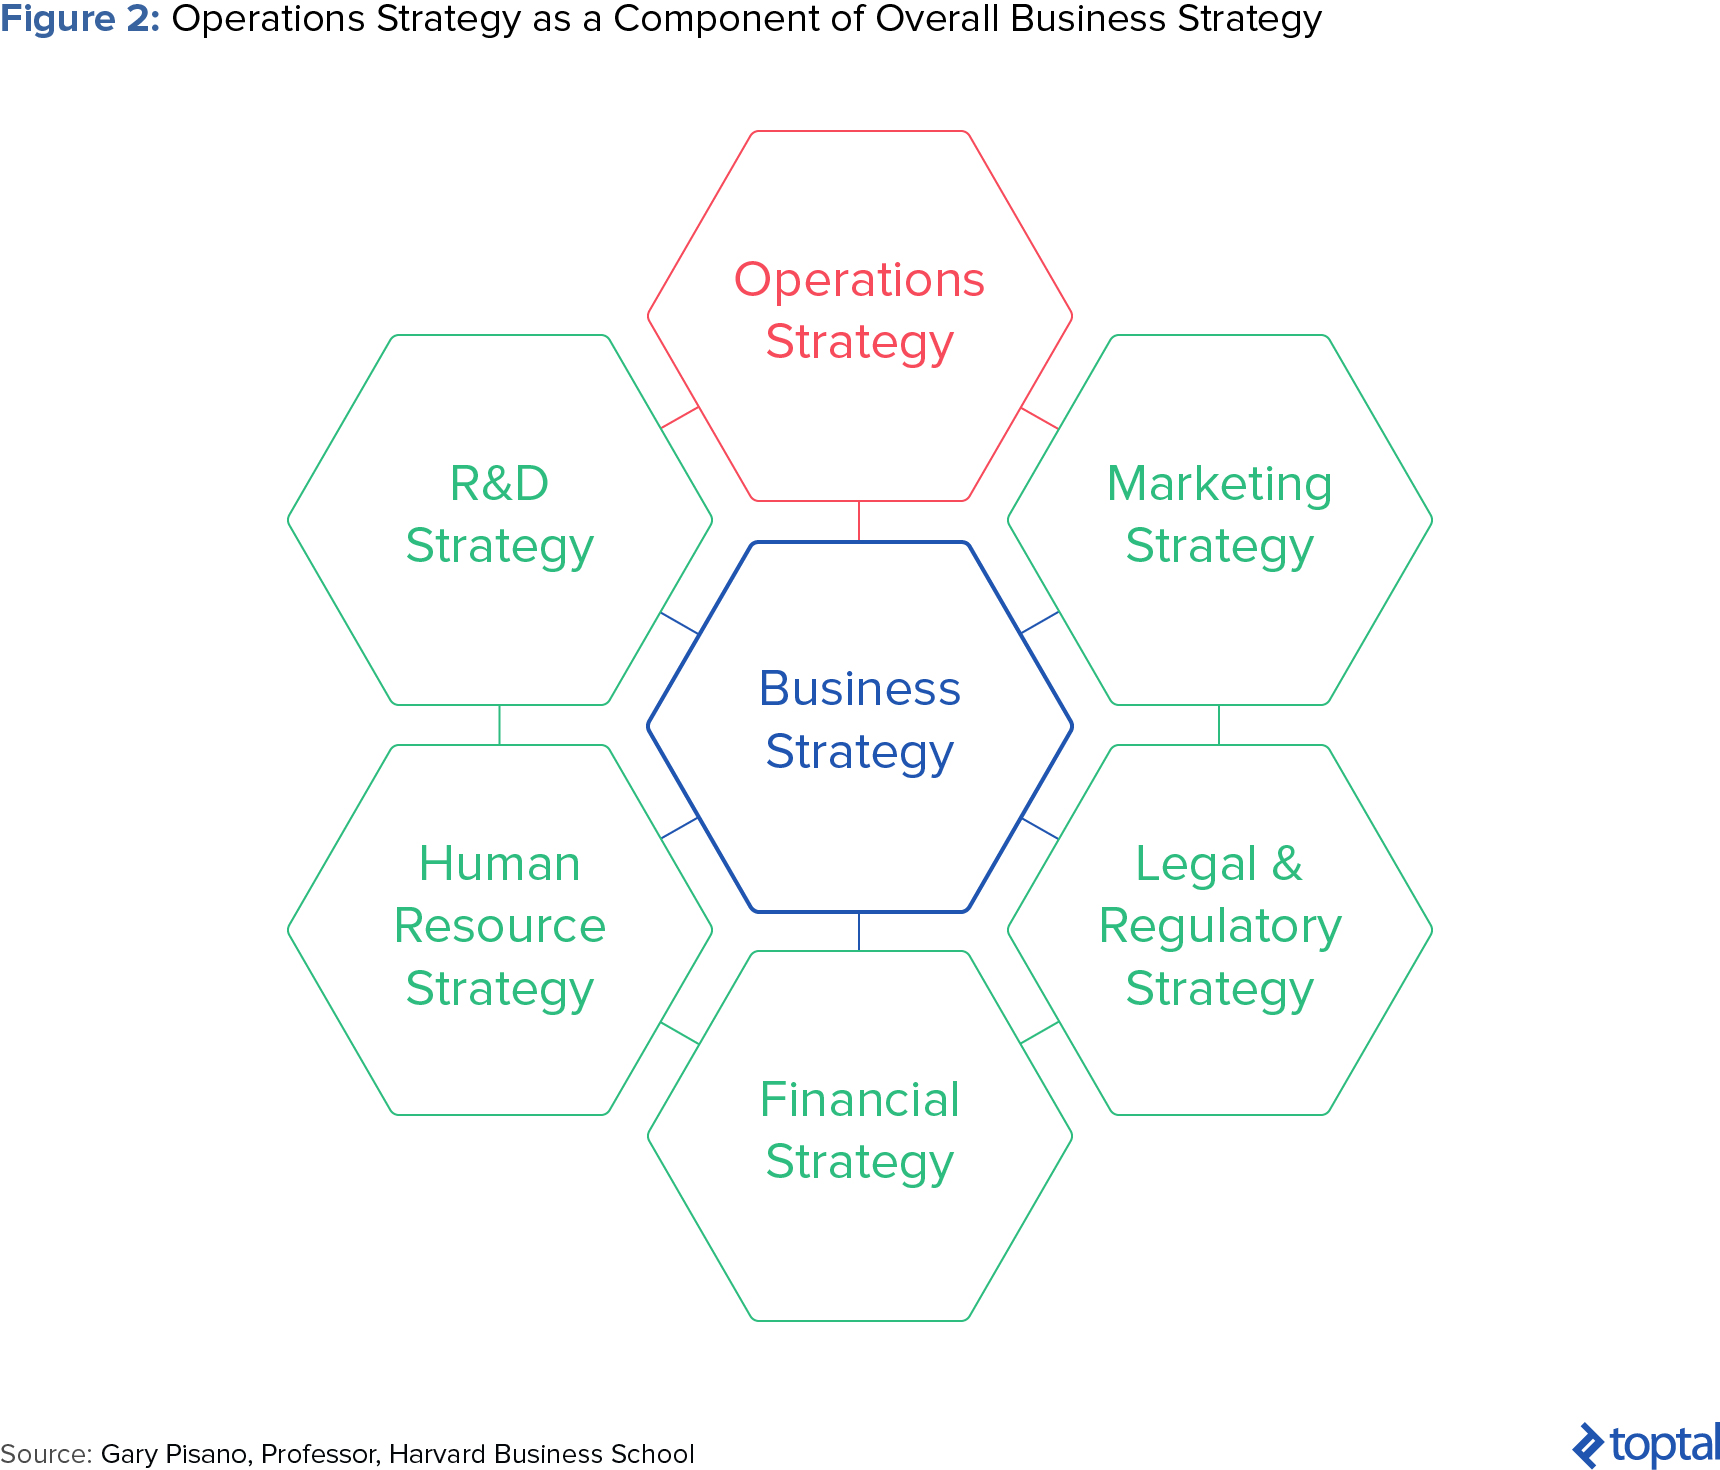 Figure 2: Operations Strategy as a Component of Overall Business Strategy